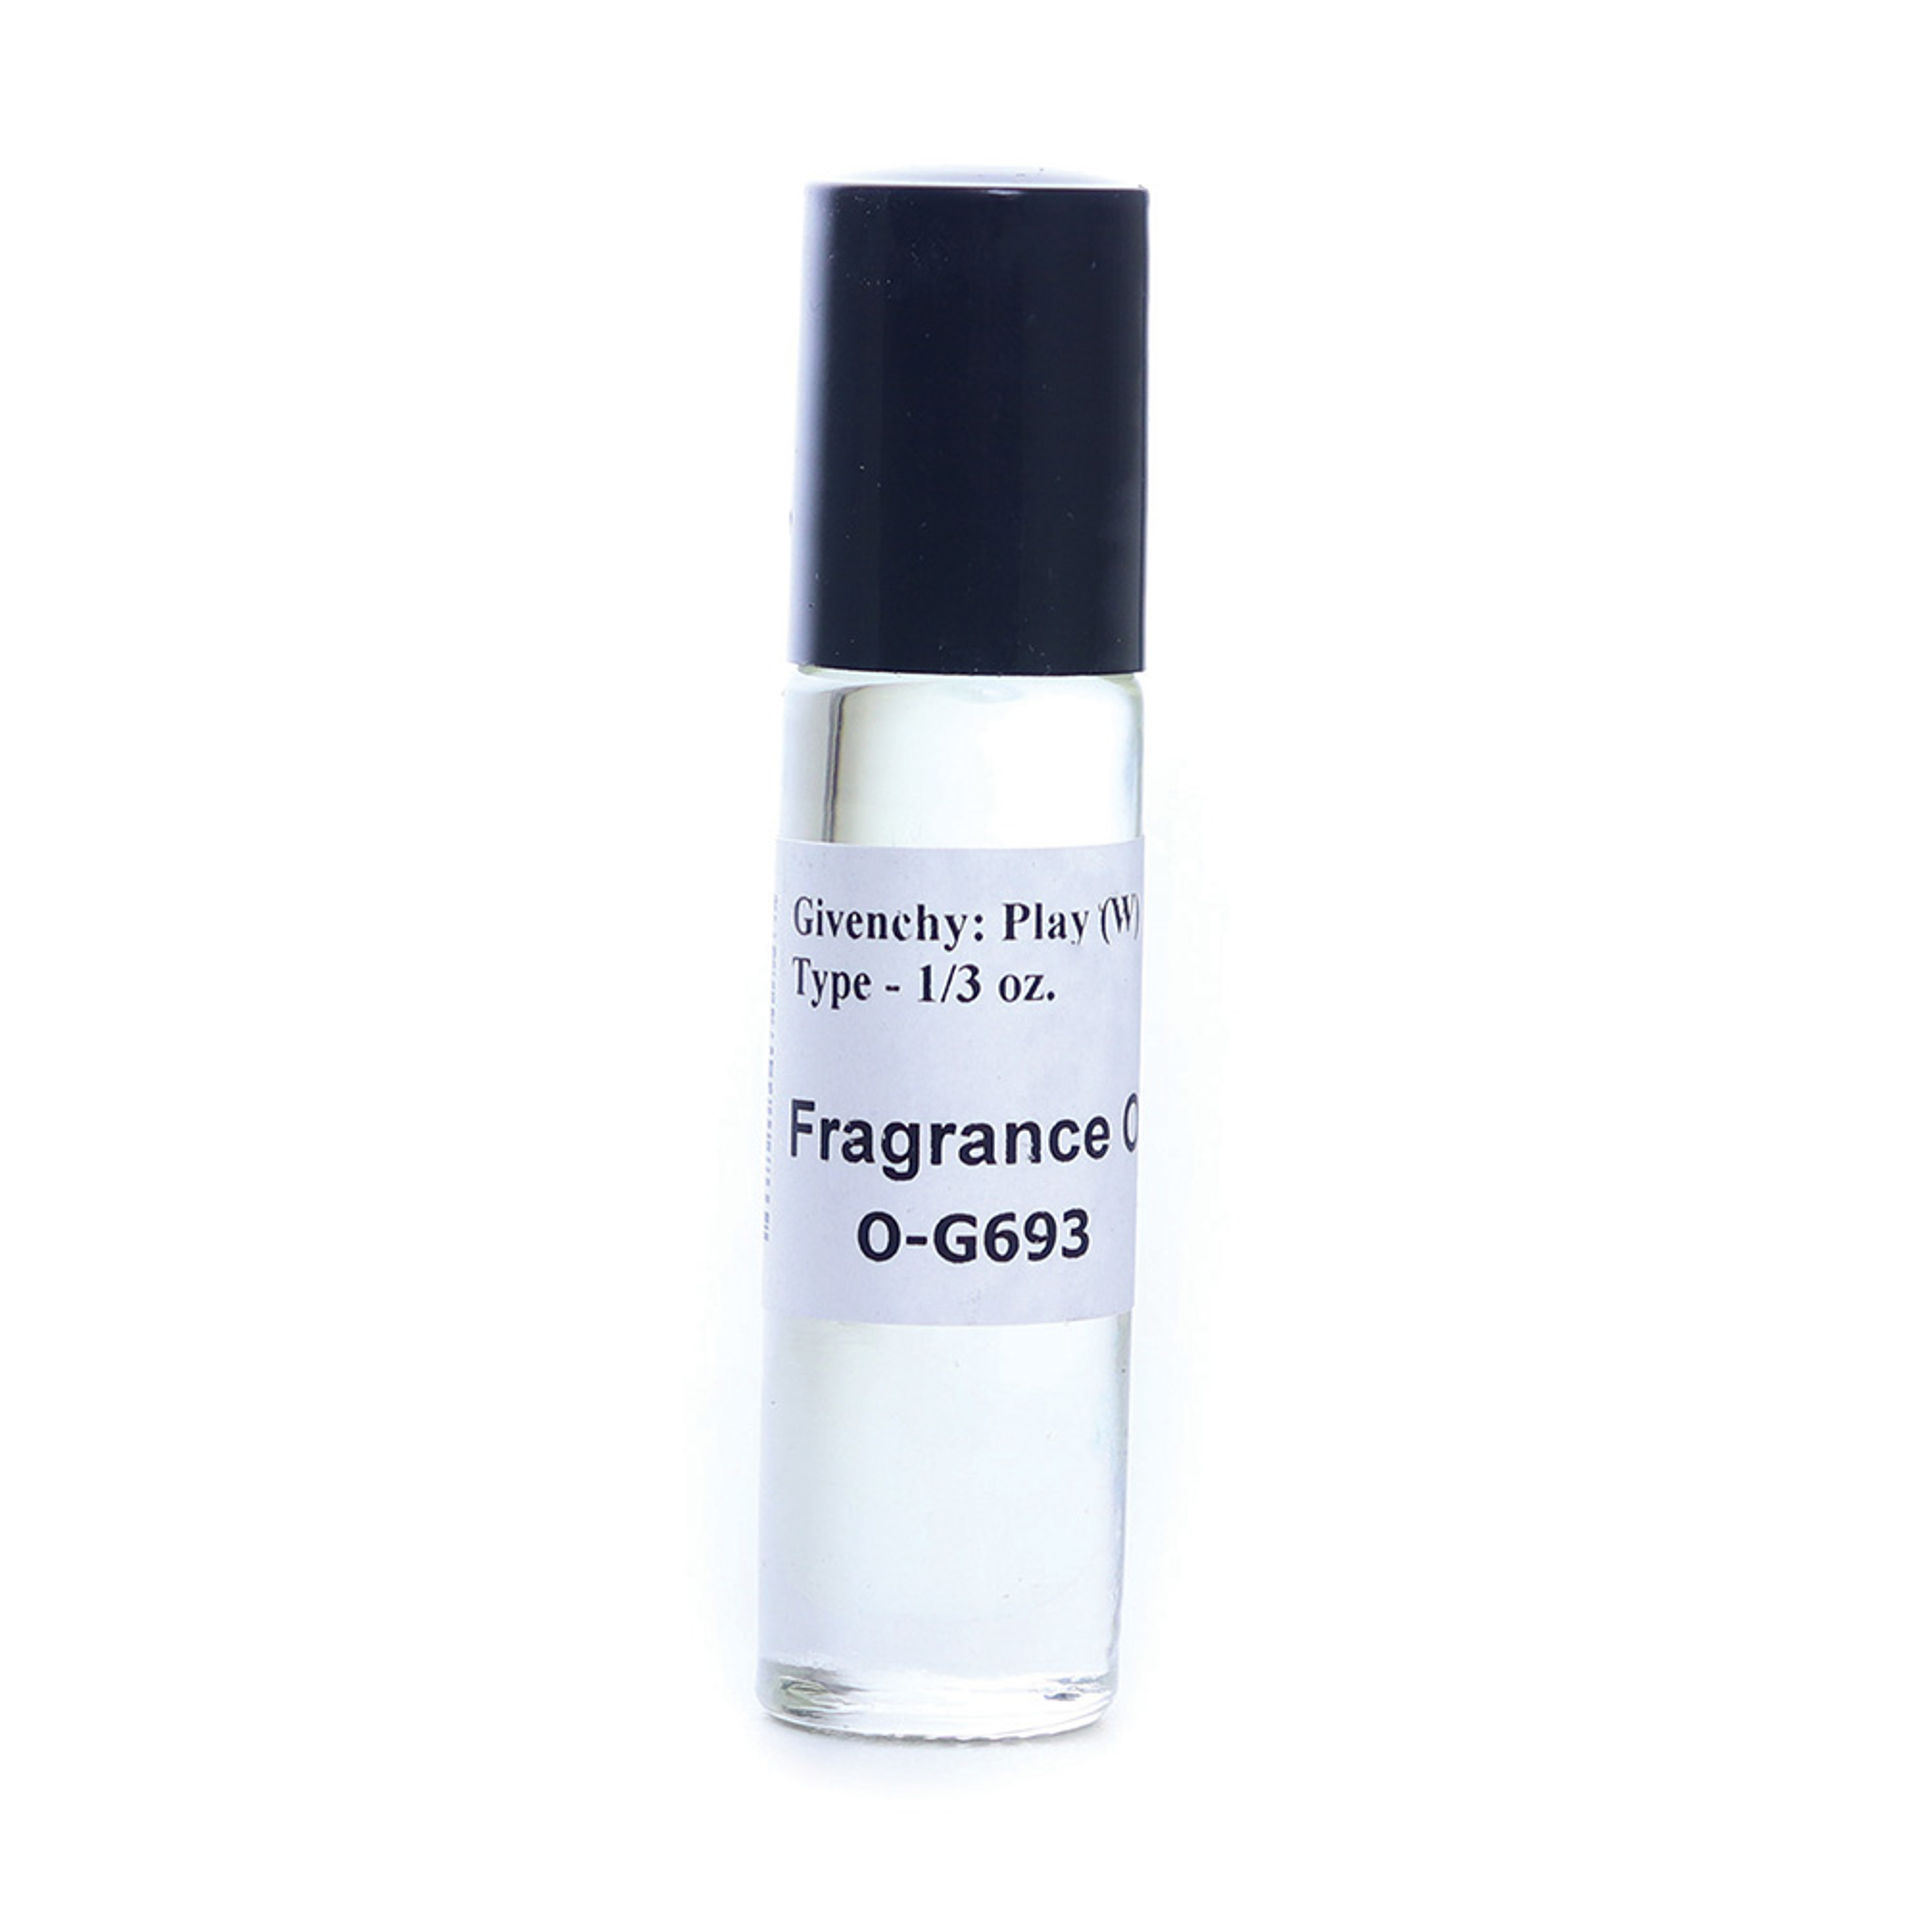 Picture of Givenchy: Play (W) Type - 1/3 oz.